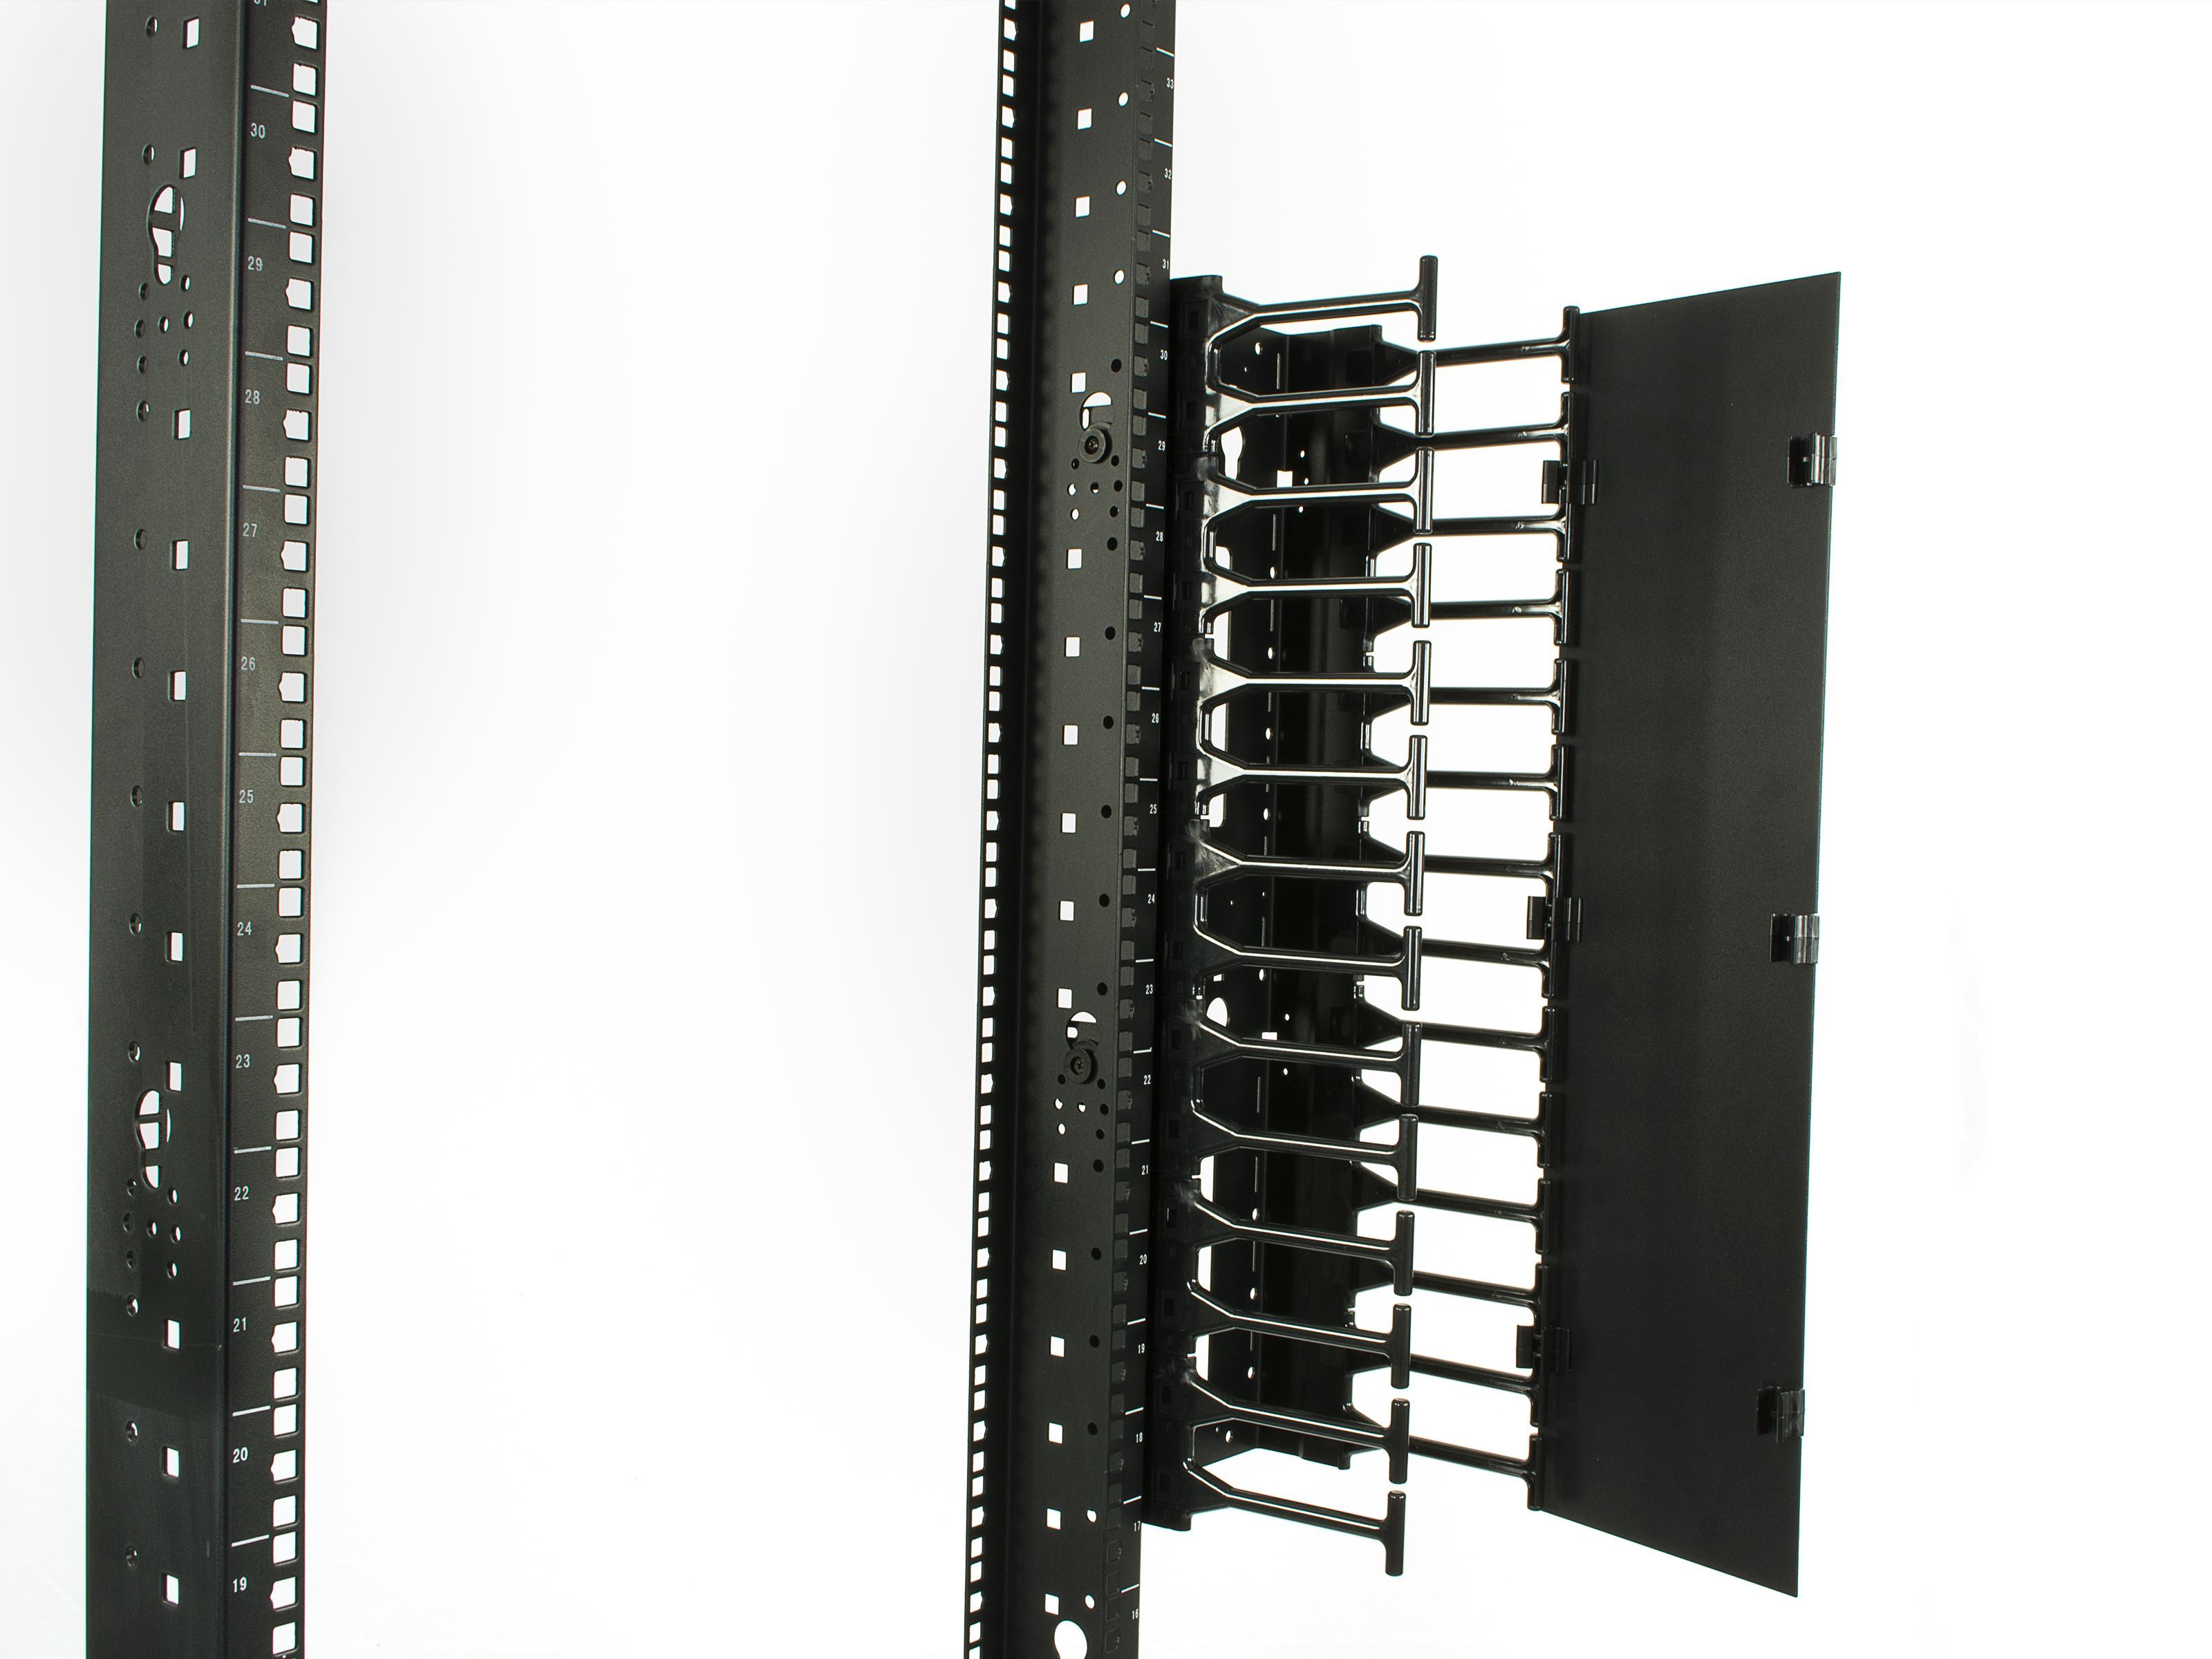 Networx - 2-Post Open Frame Network Relay Rack - 25U, Cold Rolled ...